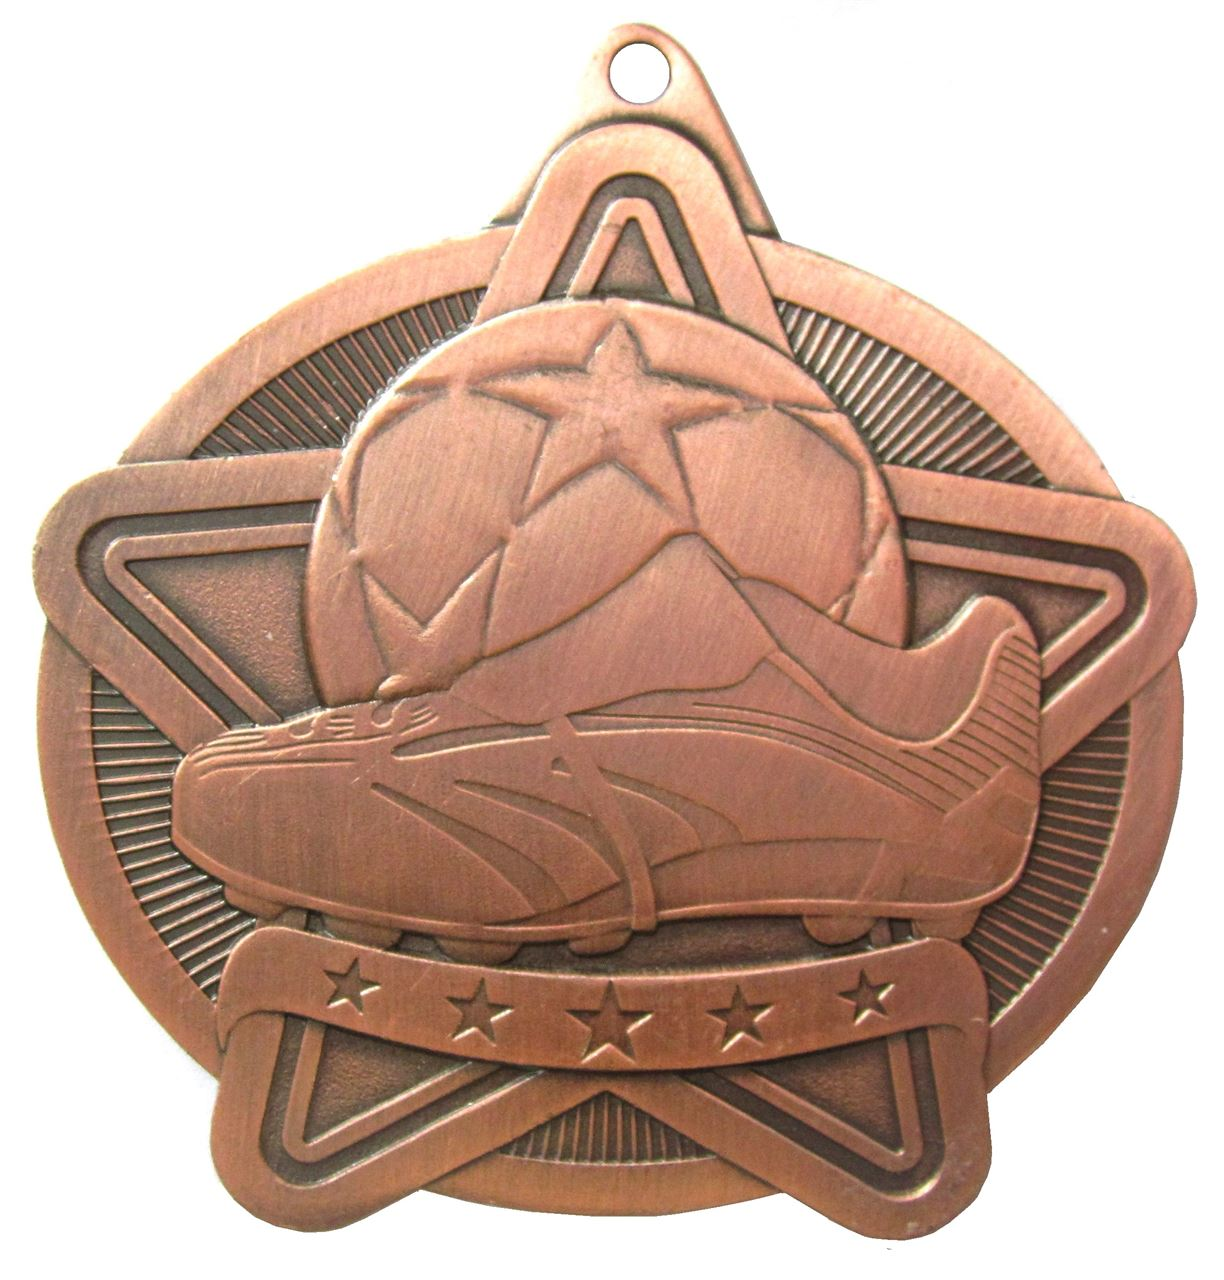 Copper Star Value Football Medal (size: 50mm) - 63571